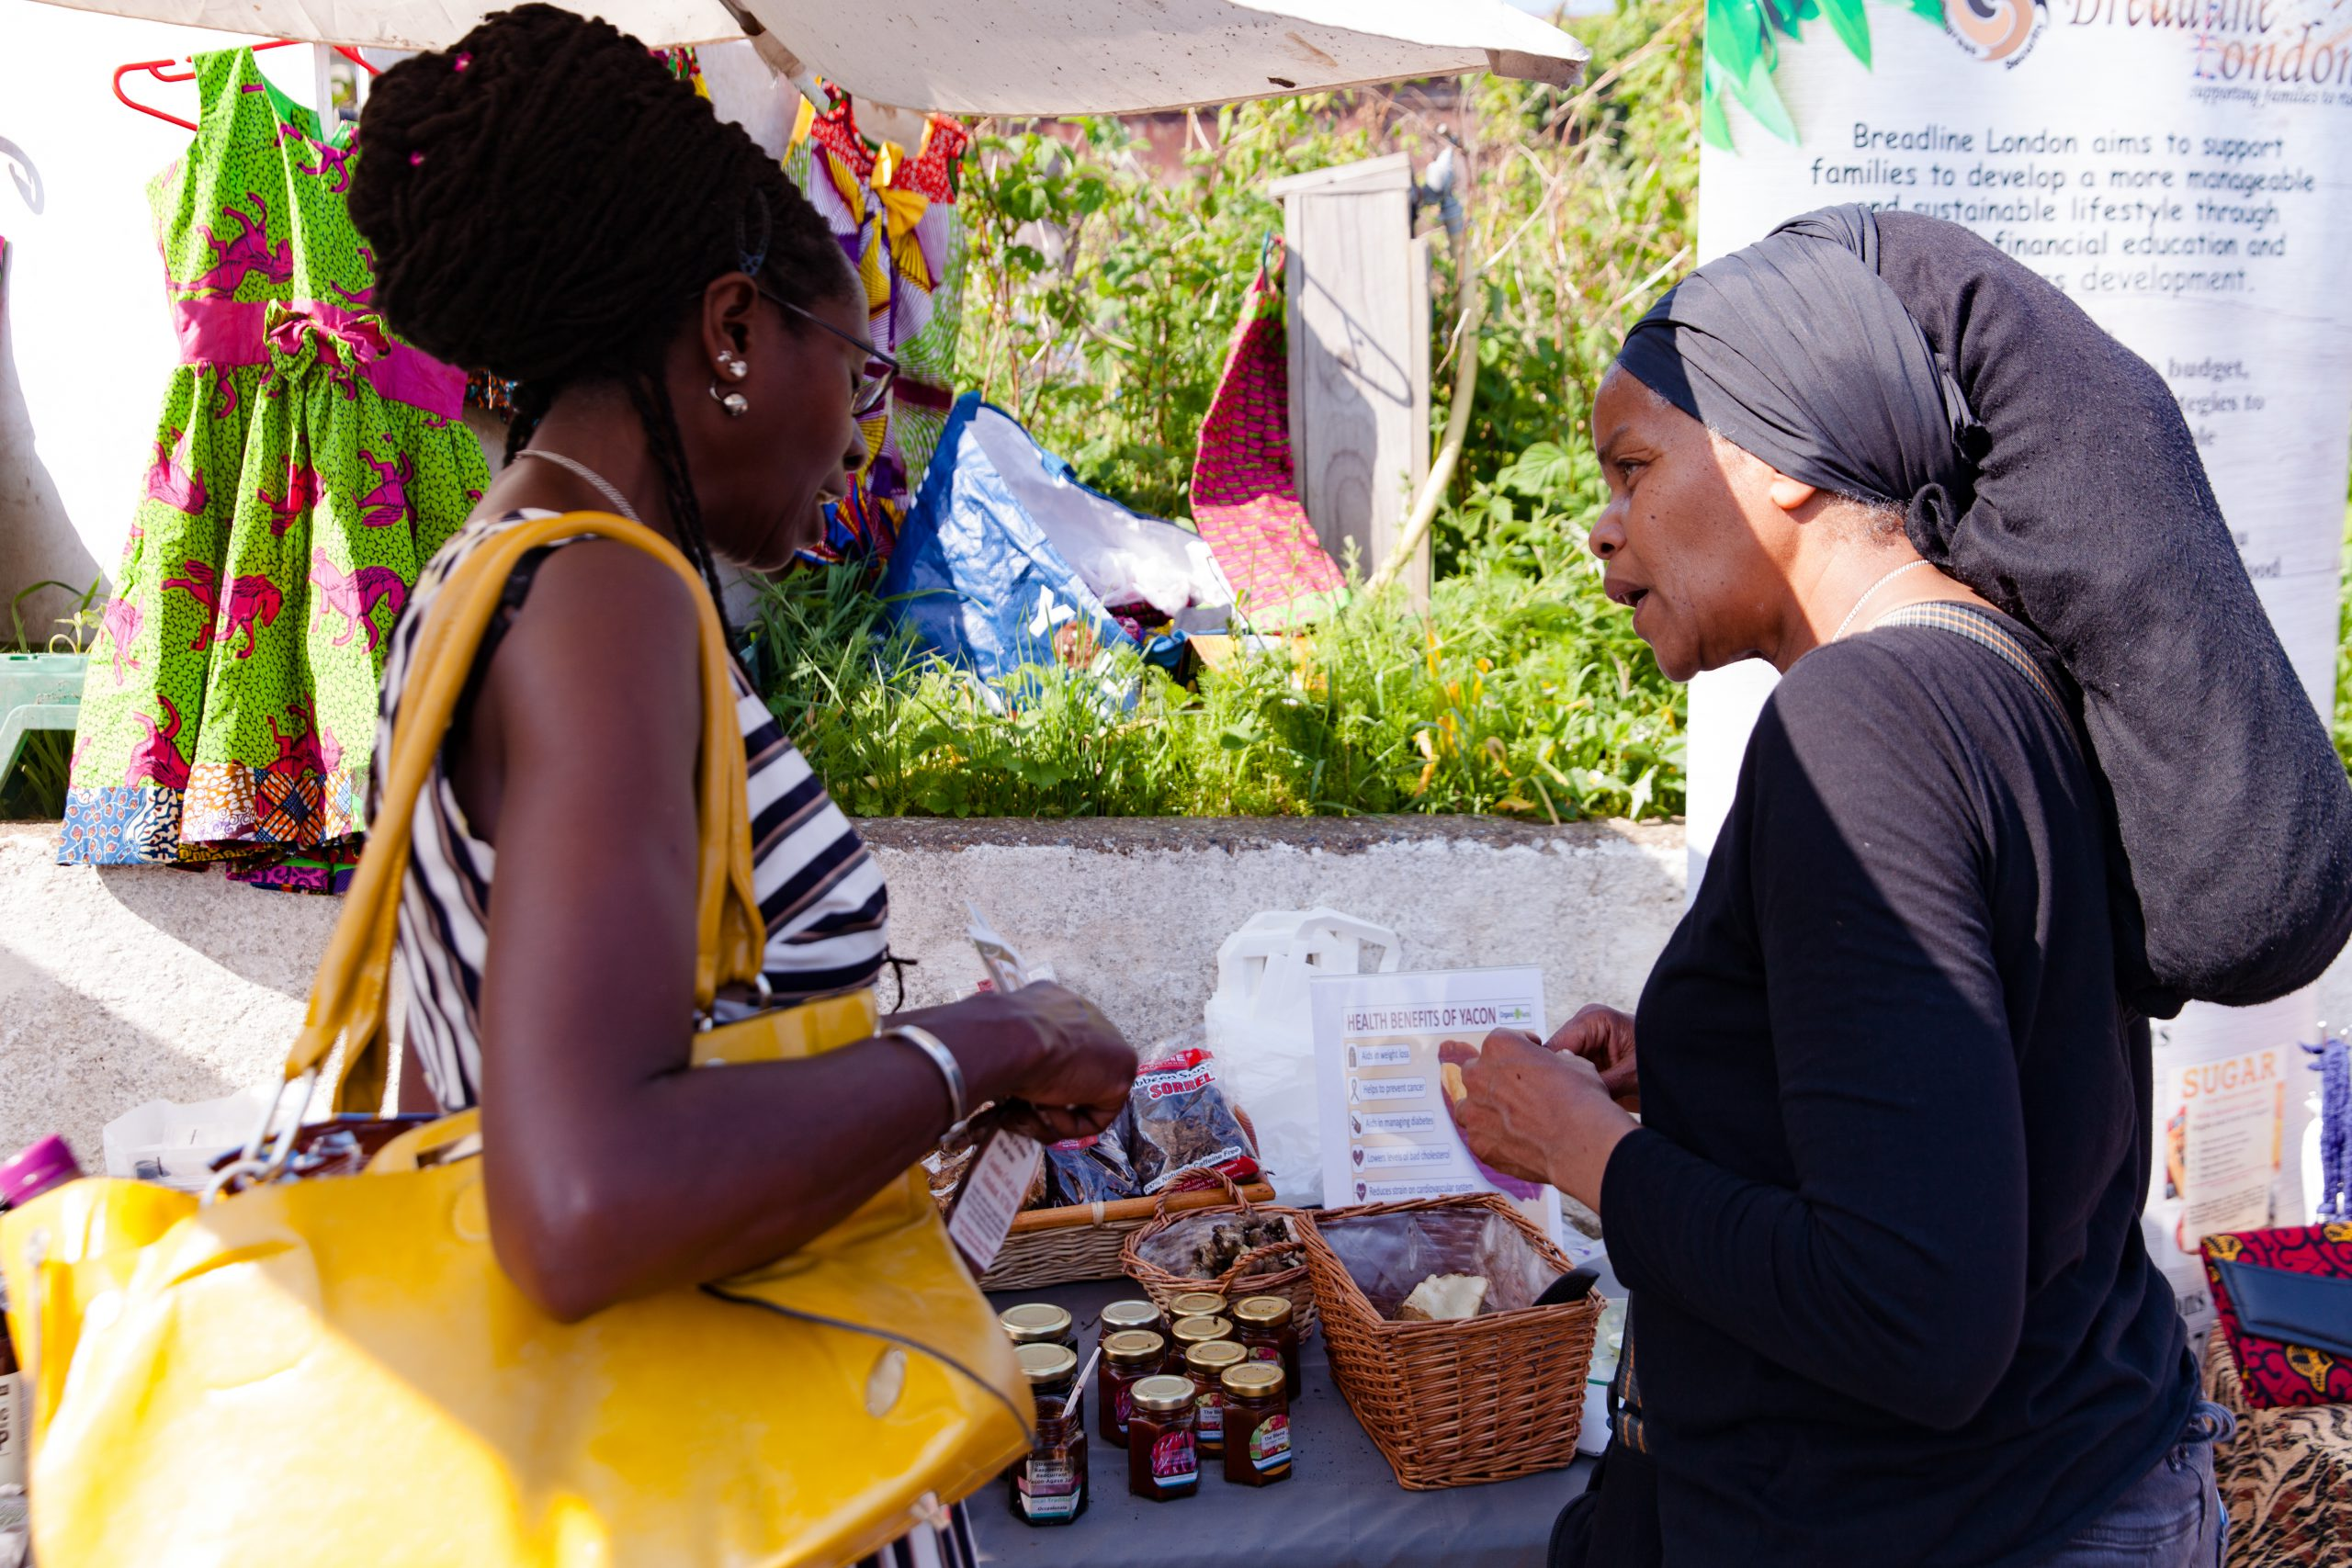 Two black women stand in front of a market stall for the social enterprise Breadline London - which aims to support families to raise themselves out of the cycle of poverty through financial education, training, practical workshops, and business opportunities.